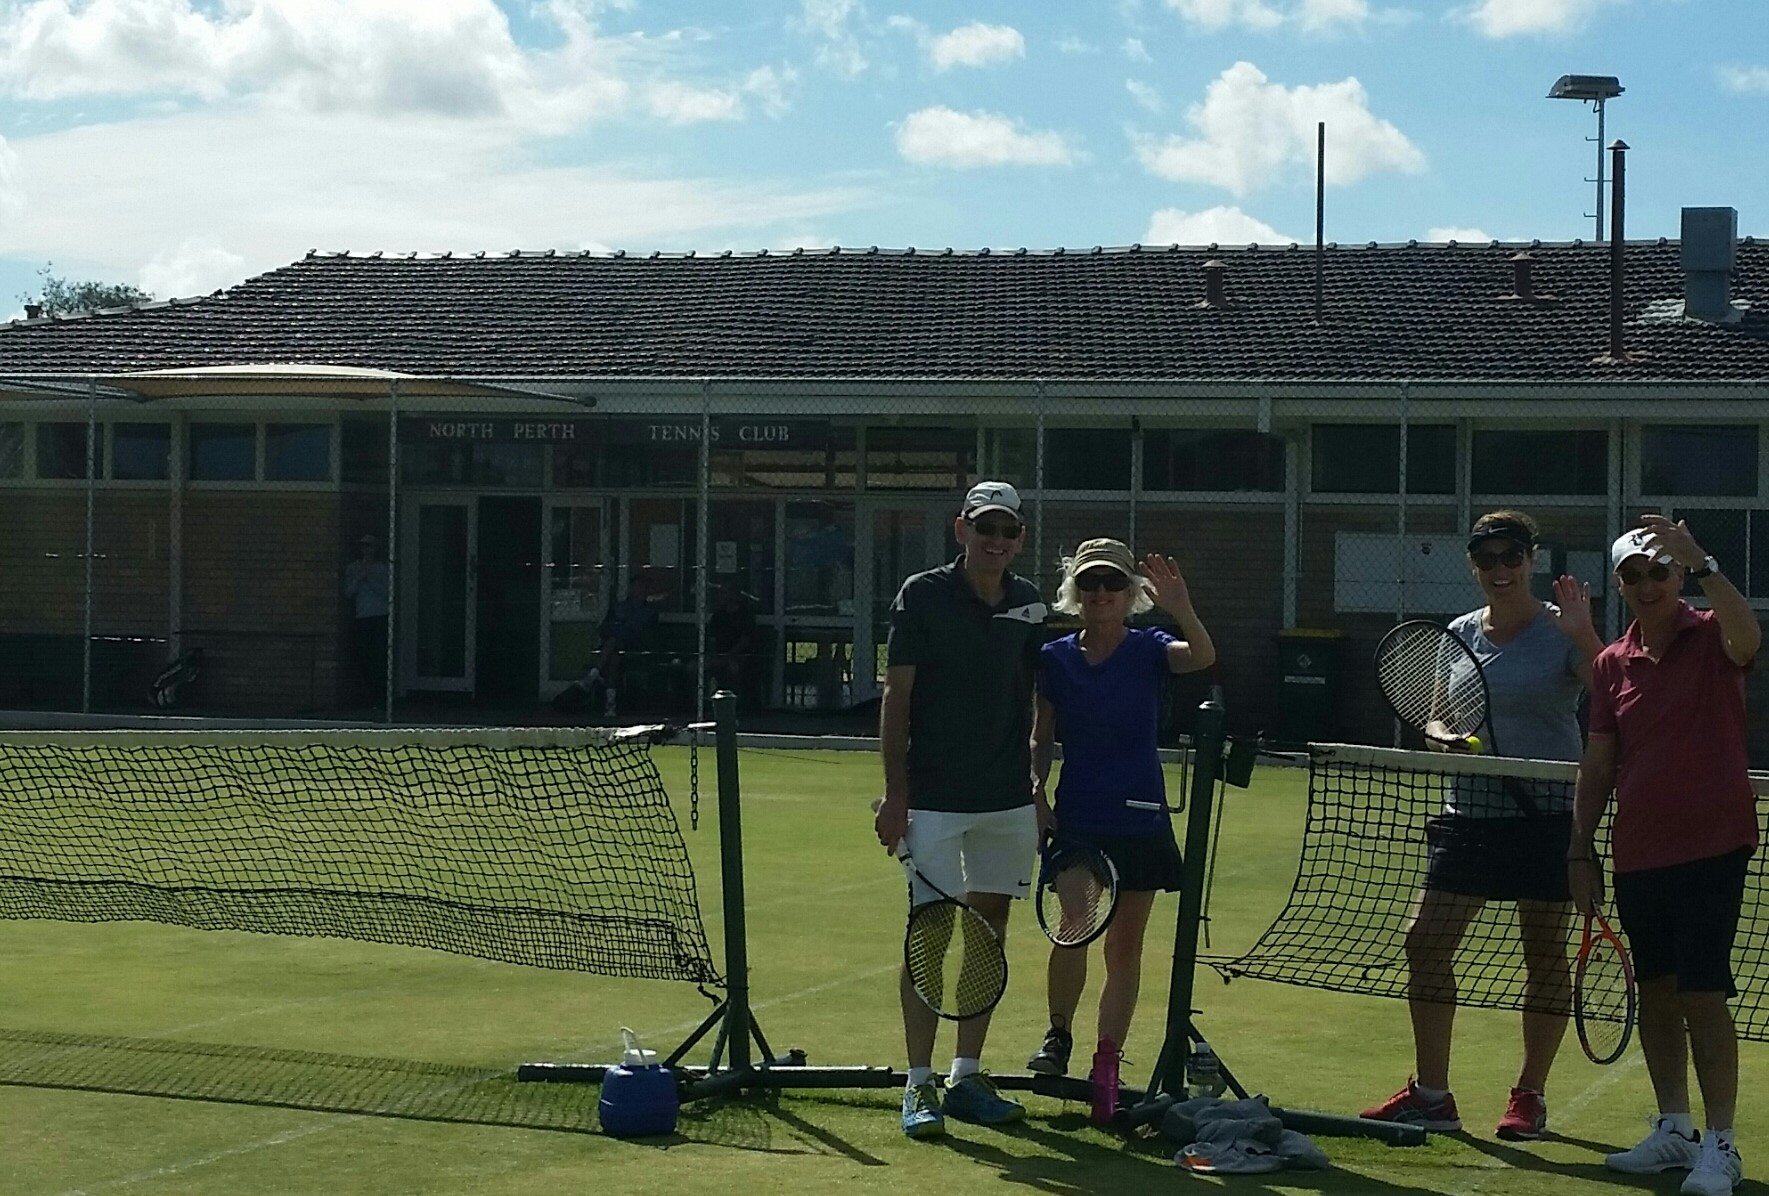 North Perth Tennis Club